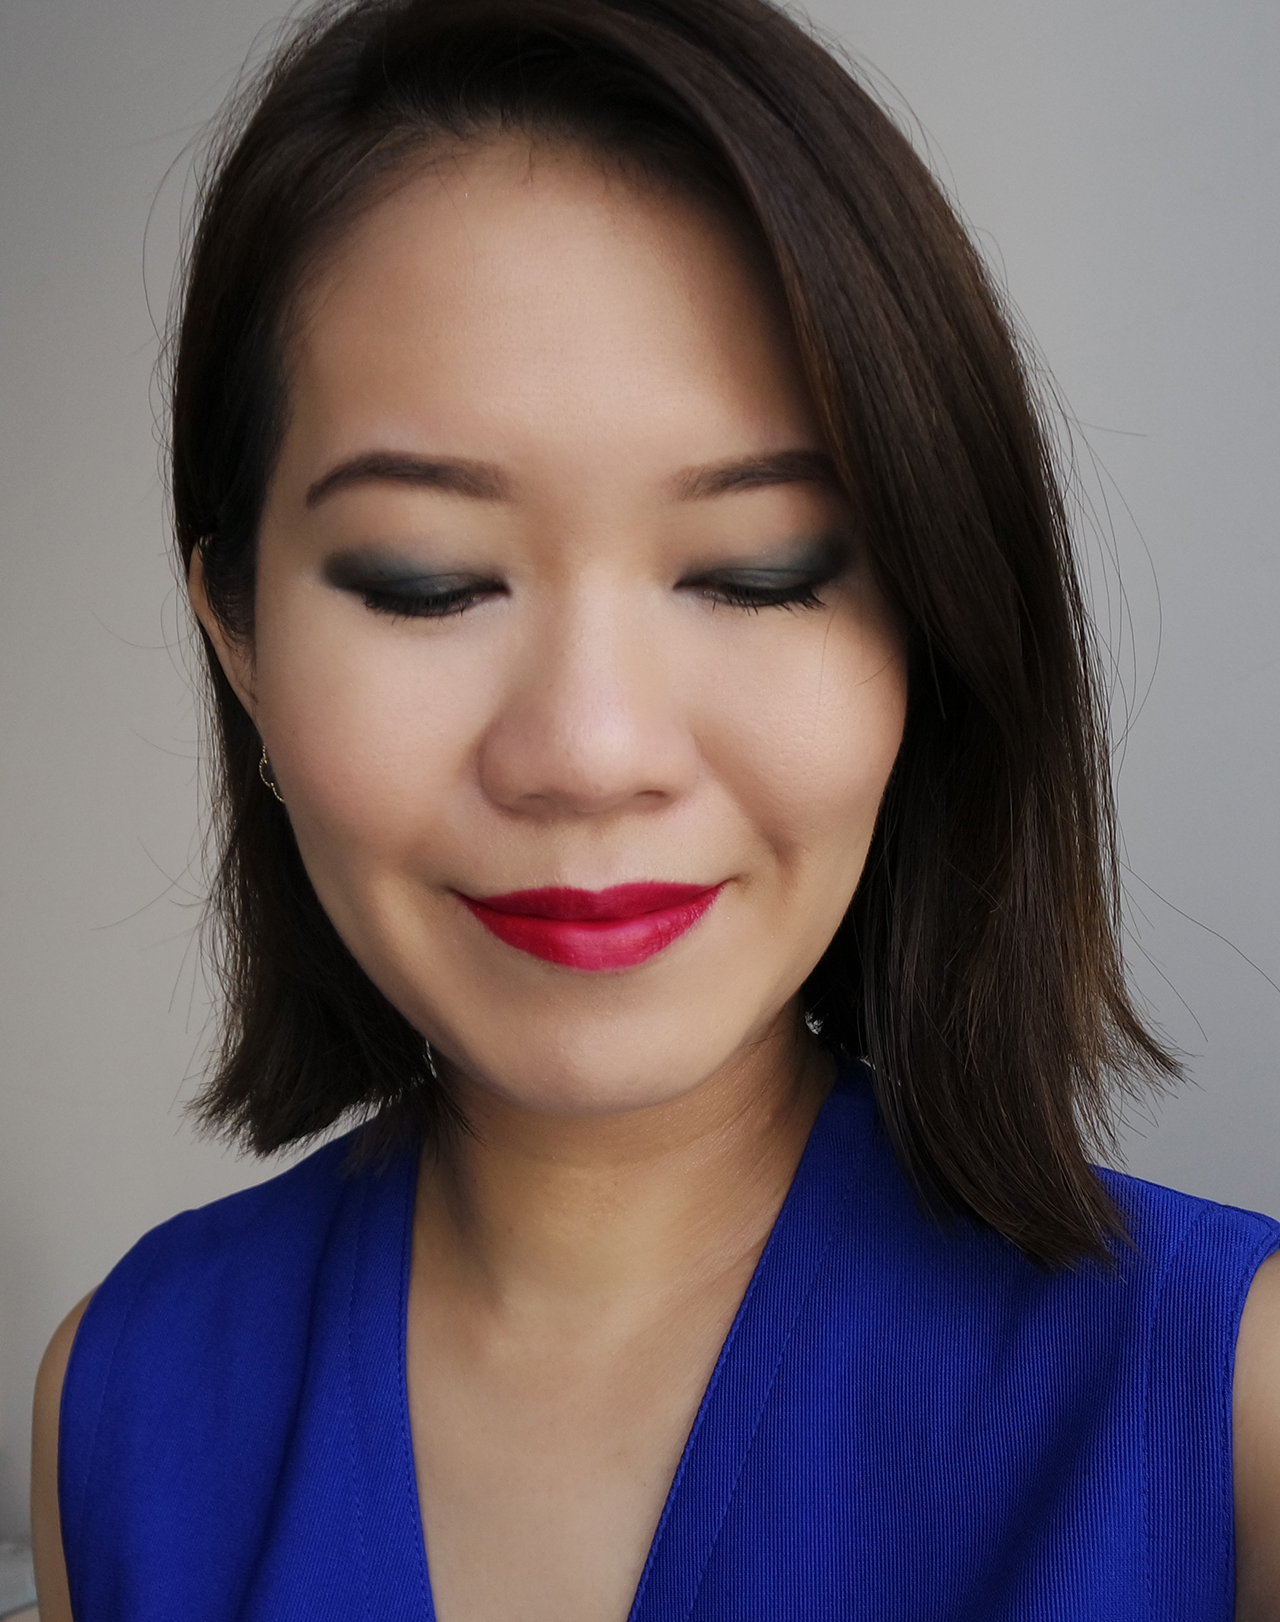 Chanel makeup look ft Quiet Revolution, Quintessence, Excess